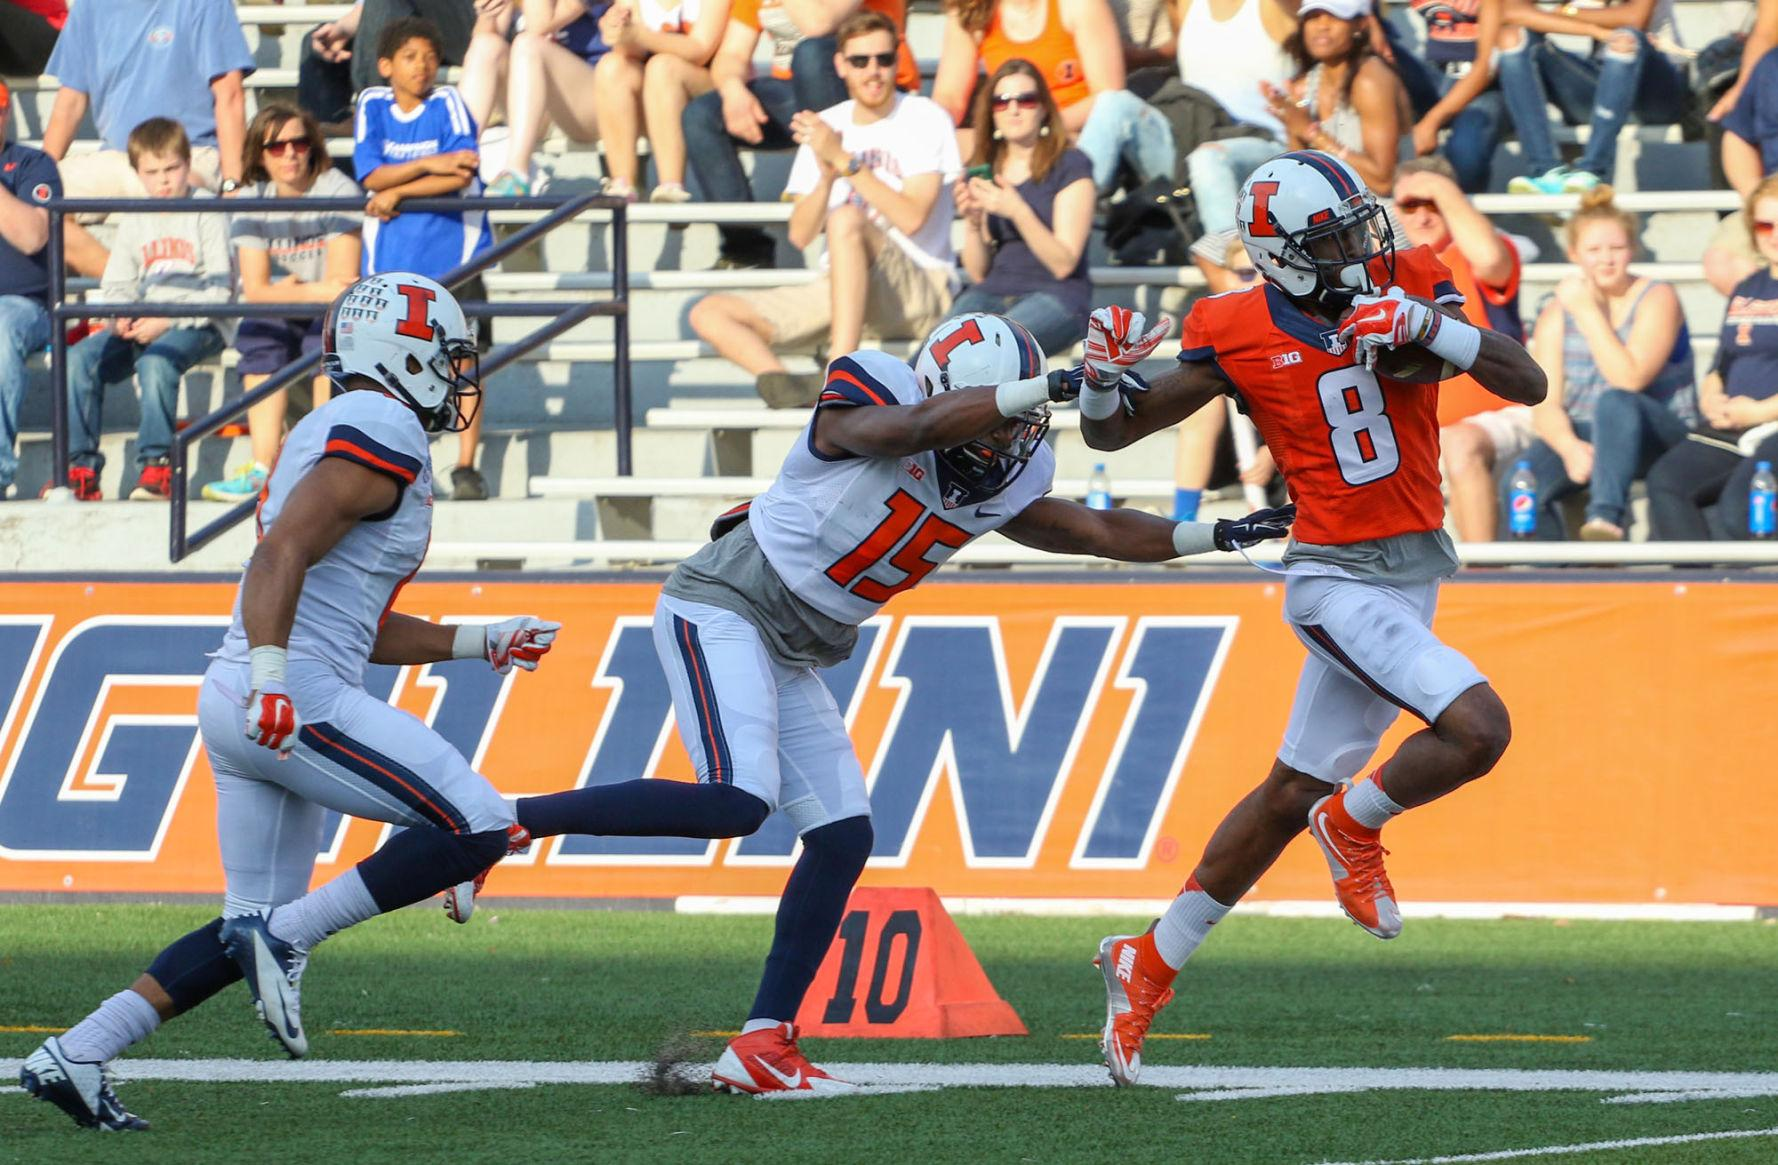 Illinois' Geronimo Allison attempts to outrun Jevaris Little and Dillan Cazley during the annual football Spring Game at Memorial Stadium on Saturday. The Orange won 44-41.